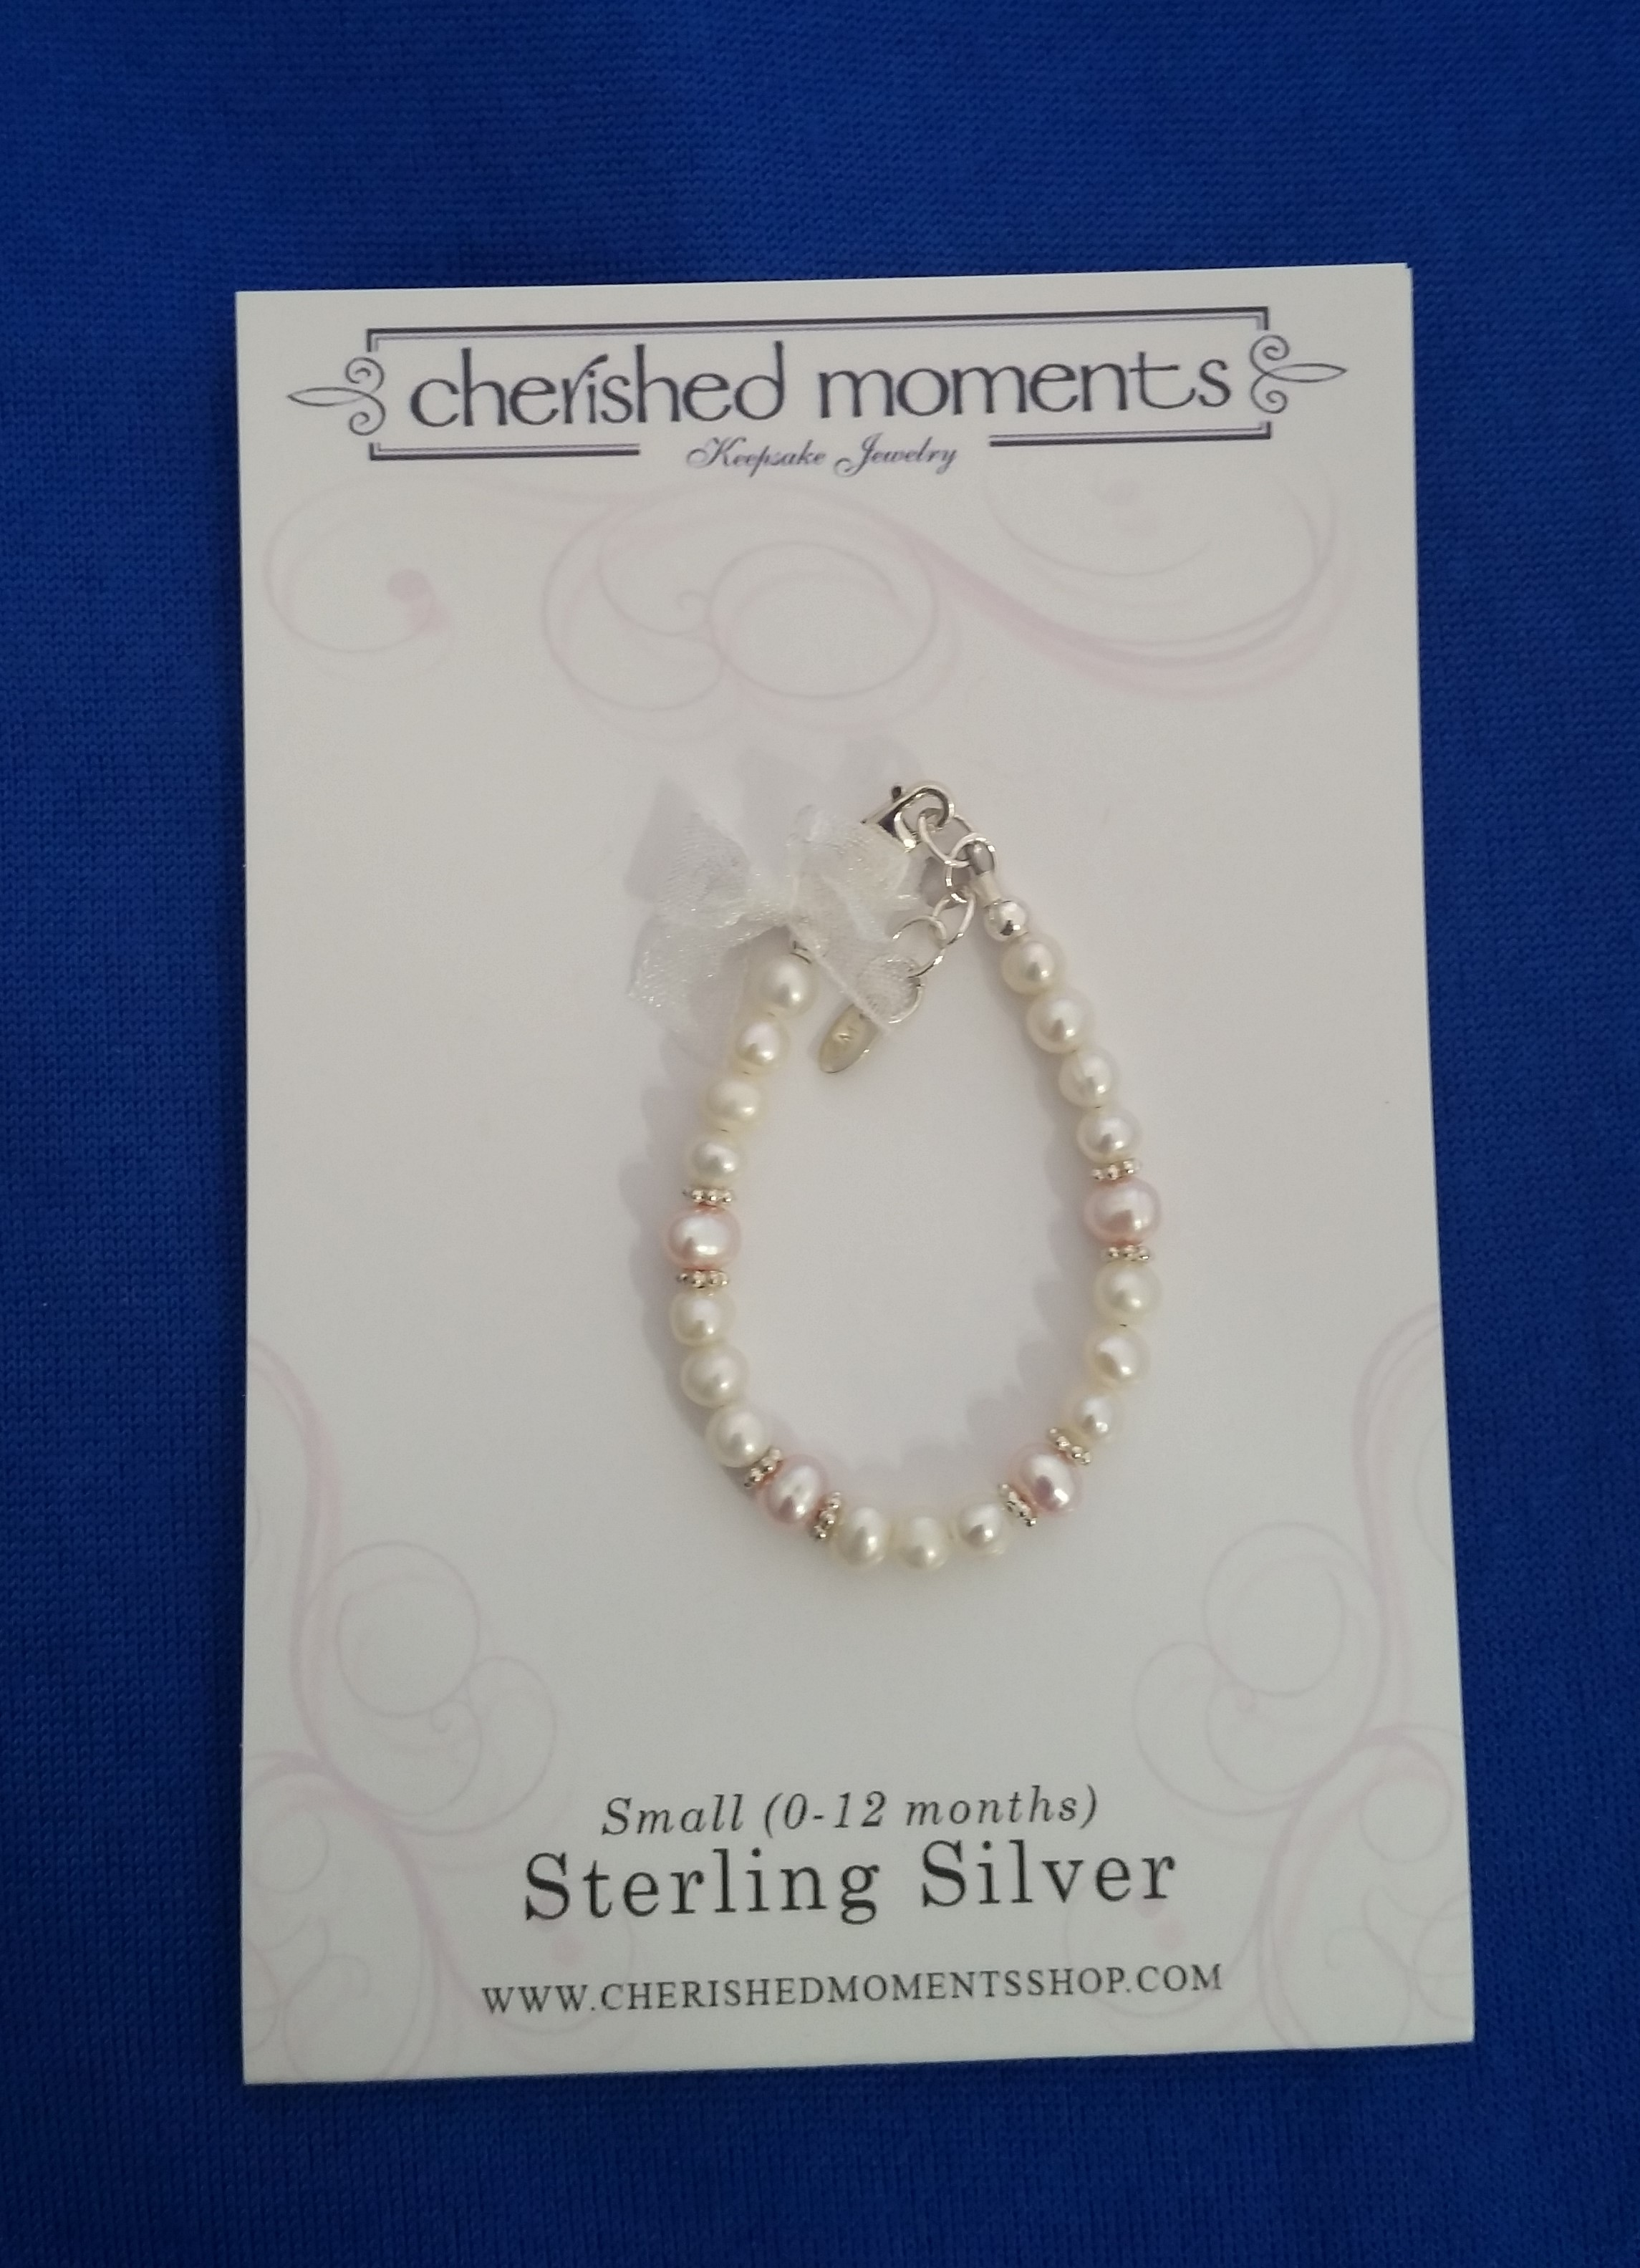 Cherished Moments - 'Baby Jewelry' - Bracelet-Addie-pink pearl